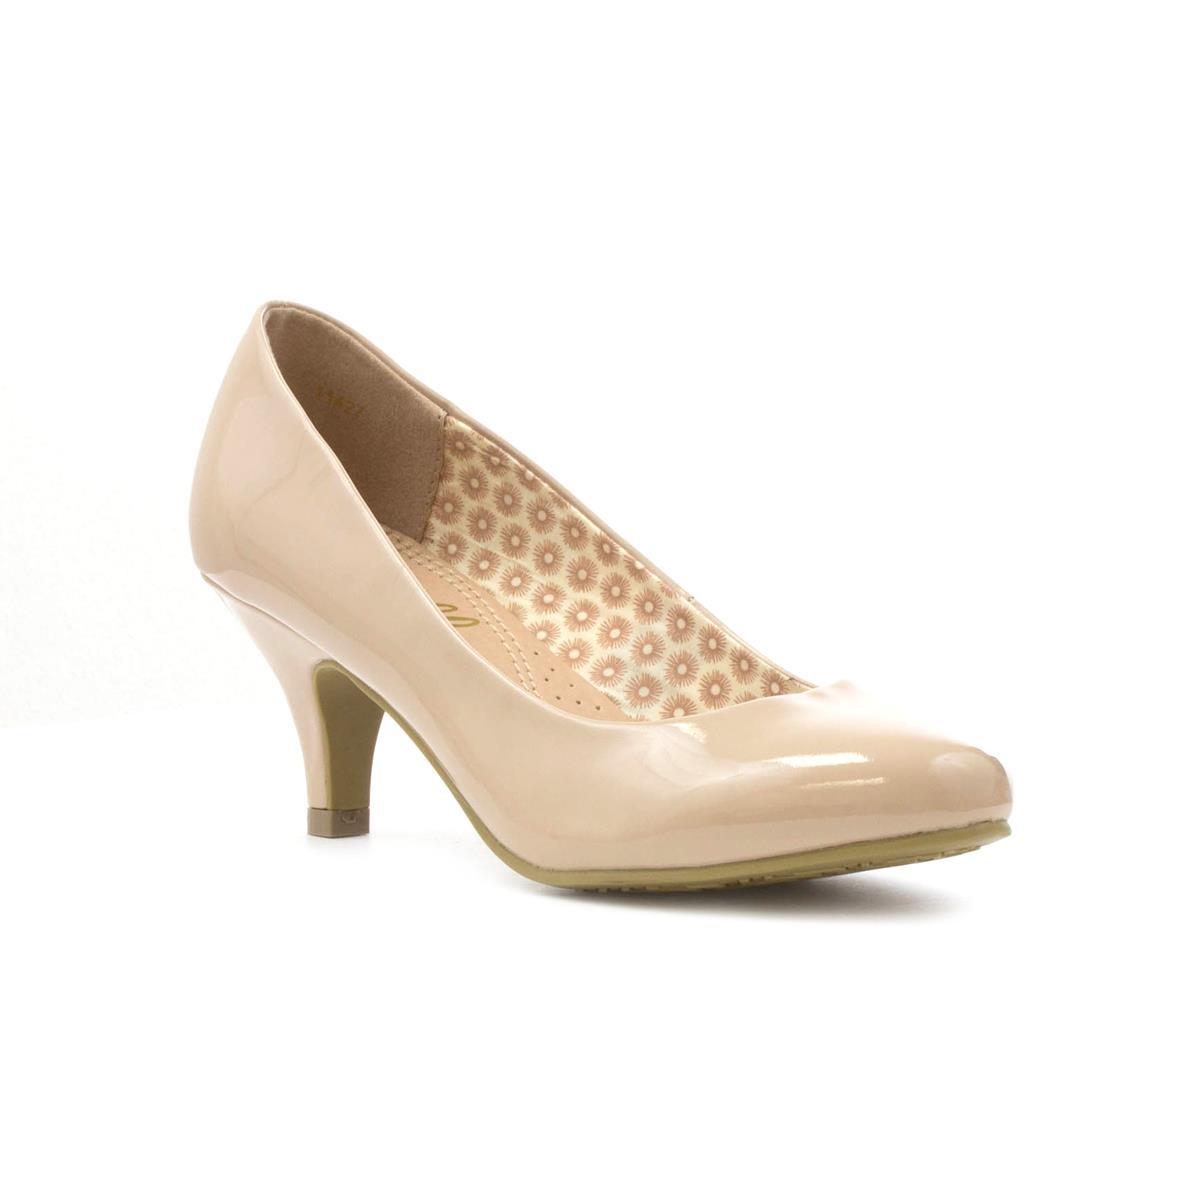 Shoes zone sandals - Lilley Womens Patent Court Shoe In Nude Click For Details